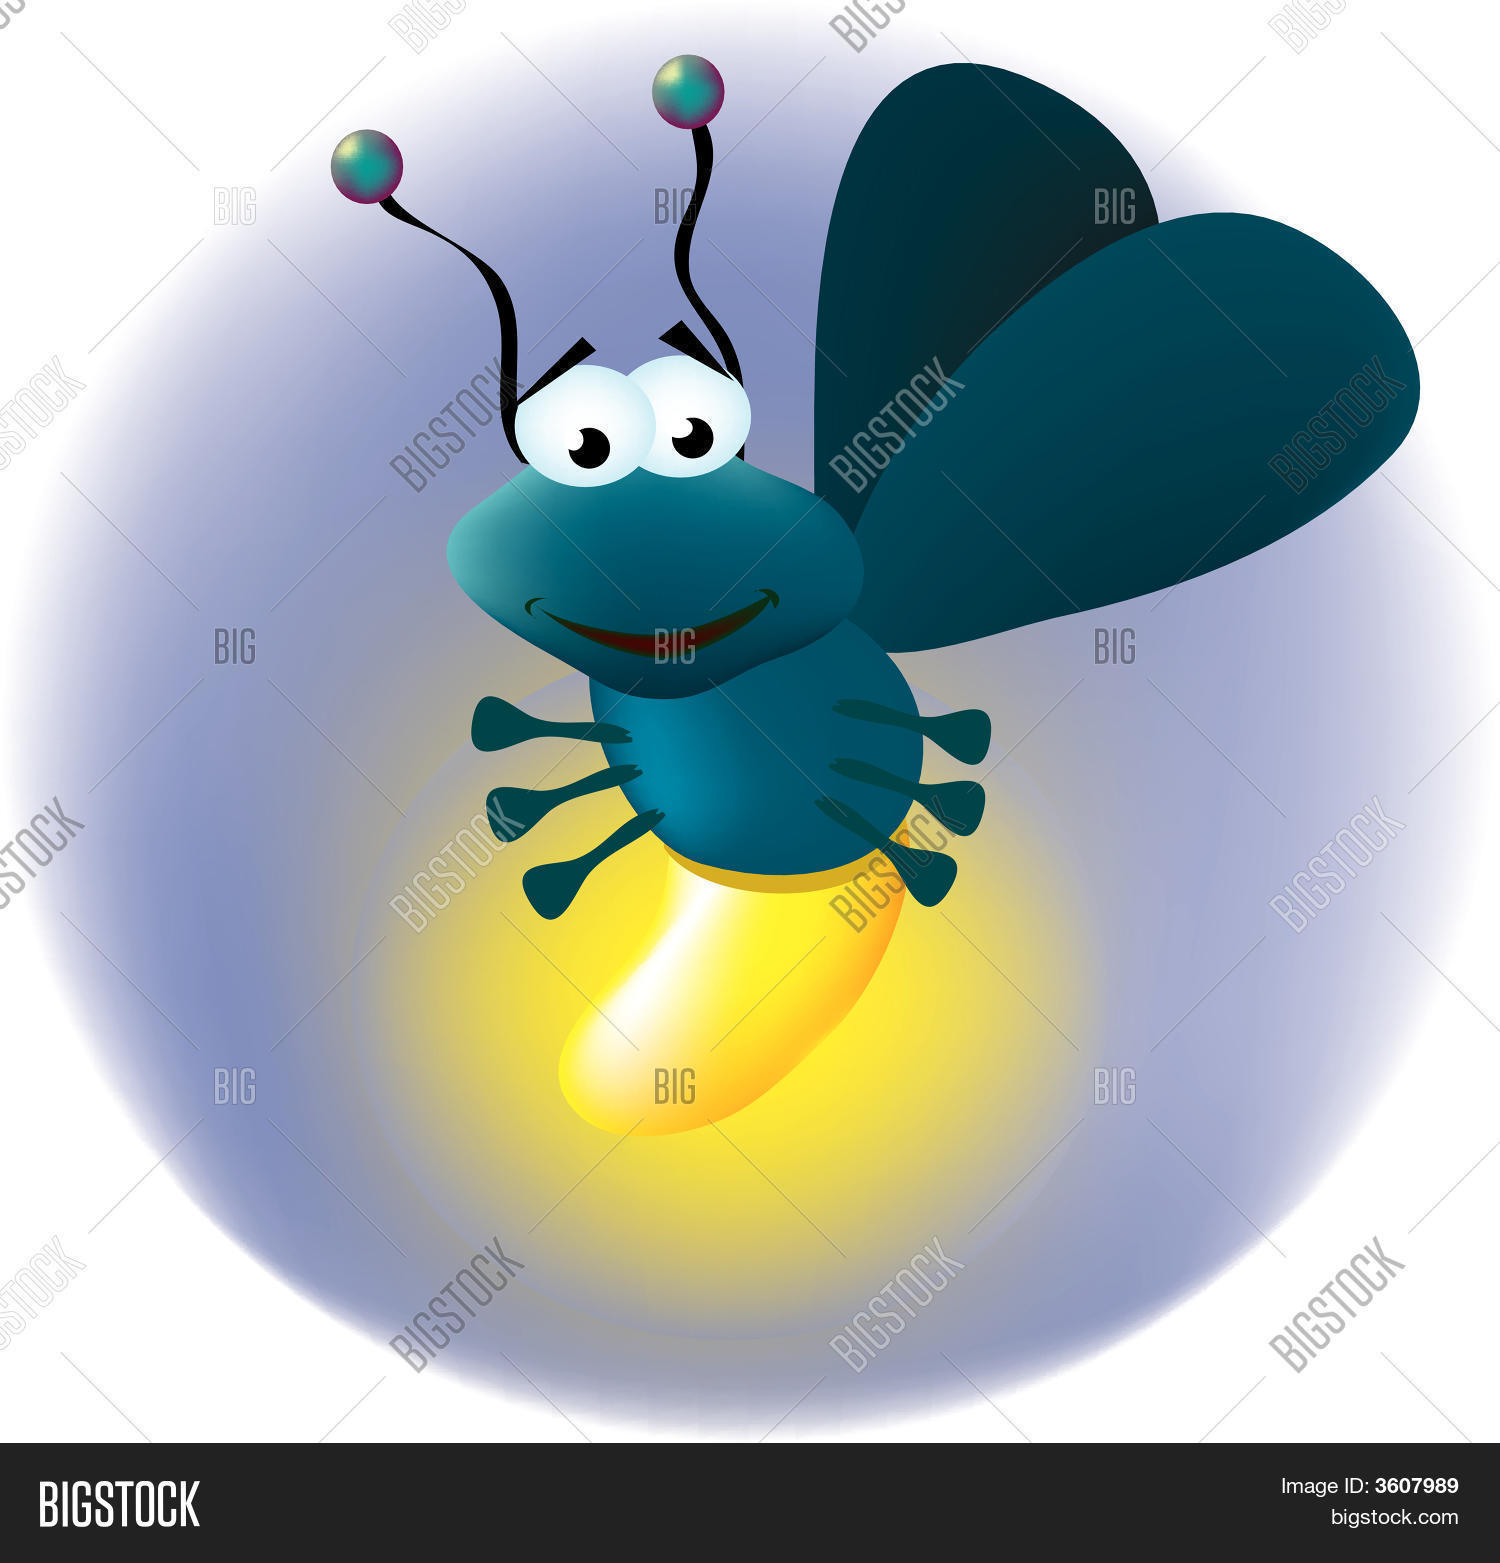 Firefly Insect Clipart | www.pixshark.com - Images ...